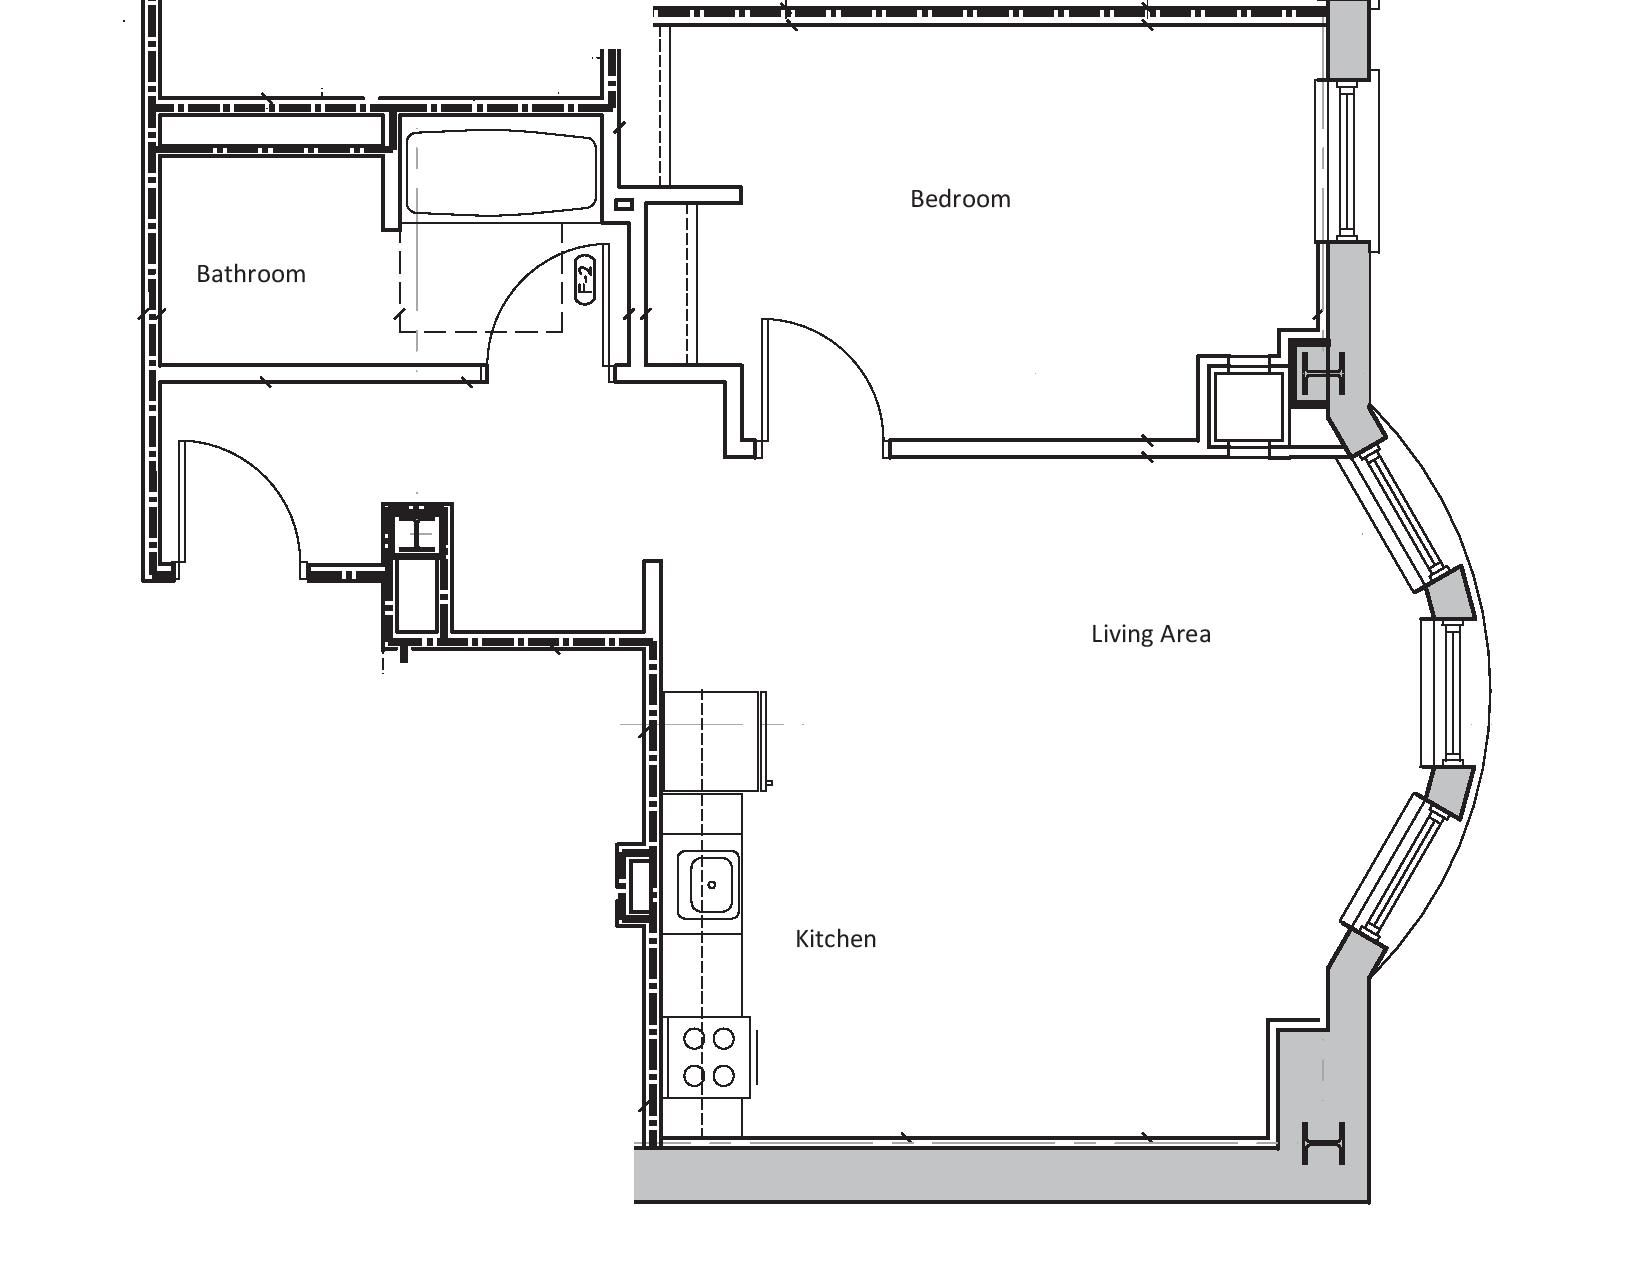 Apartment Floor Plans Bedroom Kitchen Apartment Floor Plans One Bedroom House Plans Studio Floor Plans